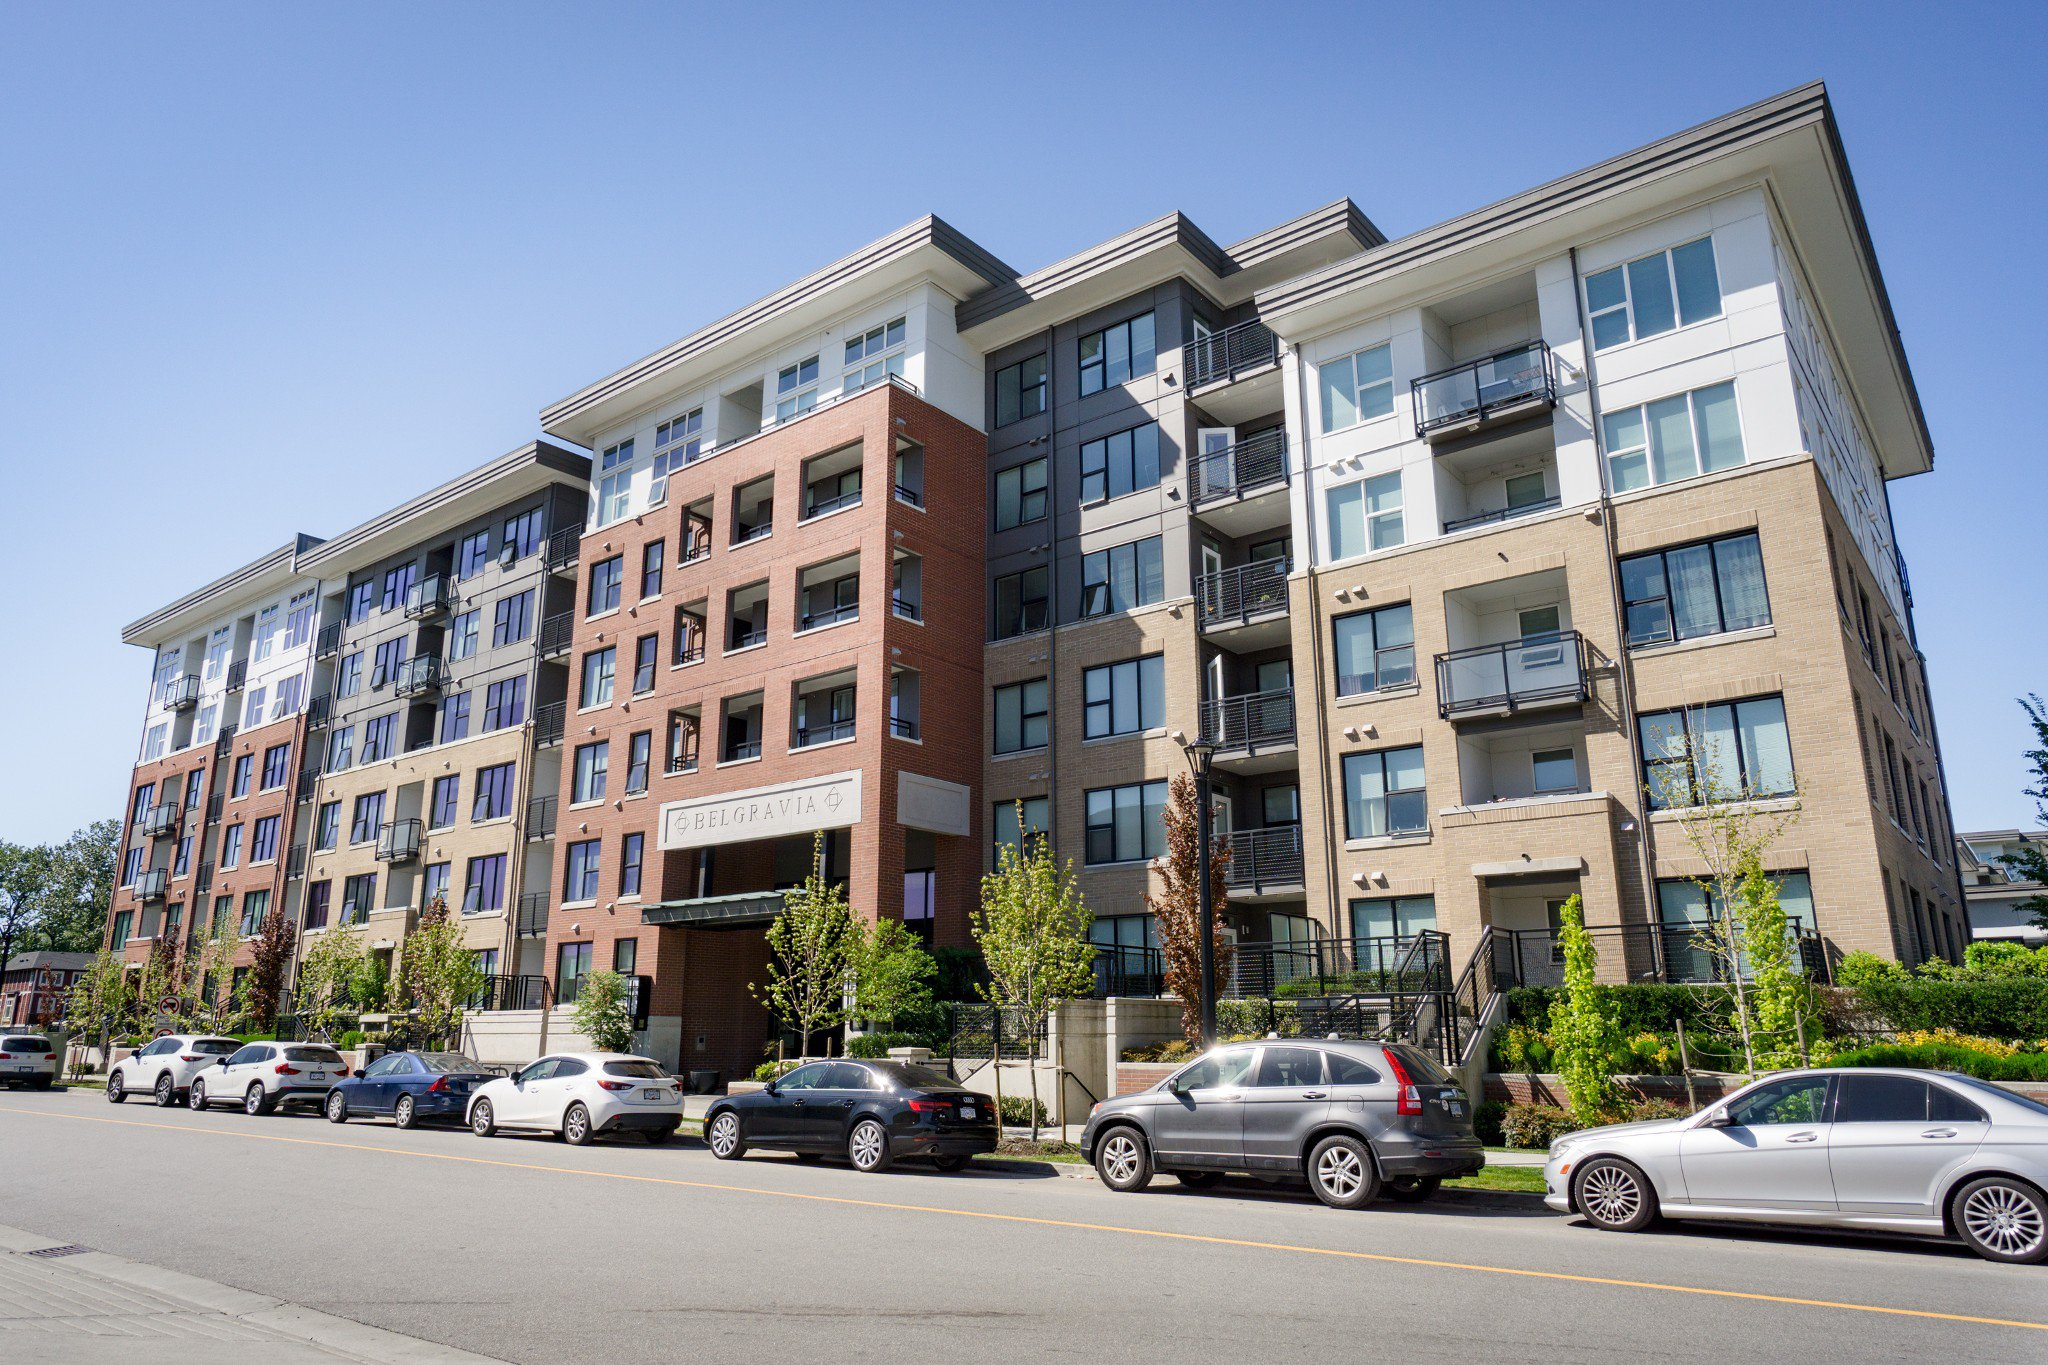 """Photo 2: Photos: 402 9311 ALEXANDRA Road in Richmond: West Cambie Condo for sale in """"ALEXANDRA COURT"""" : MLS®# R2266613"""